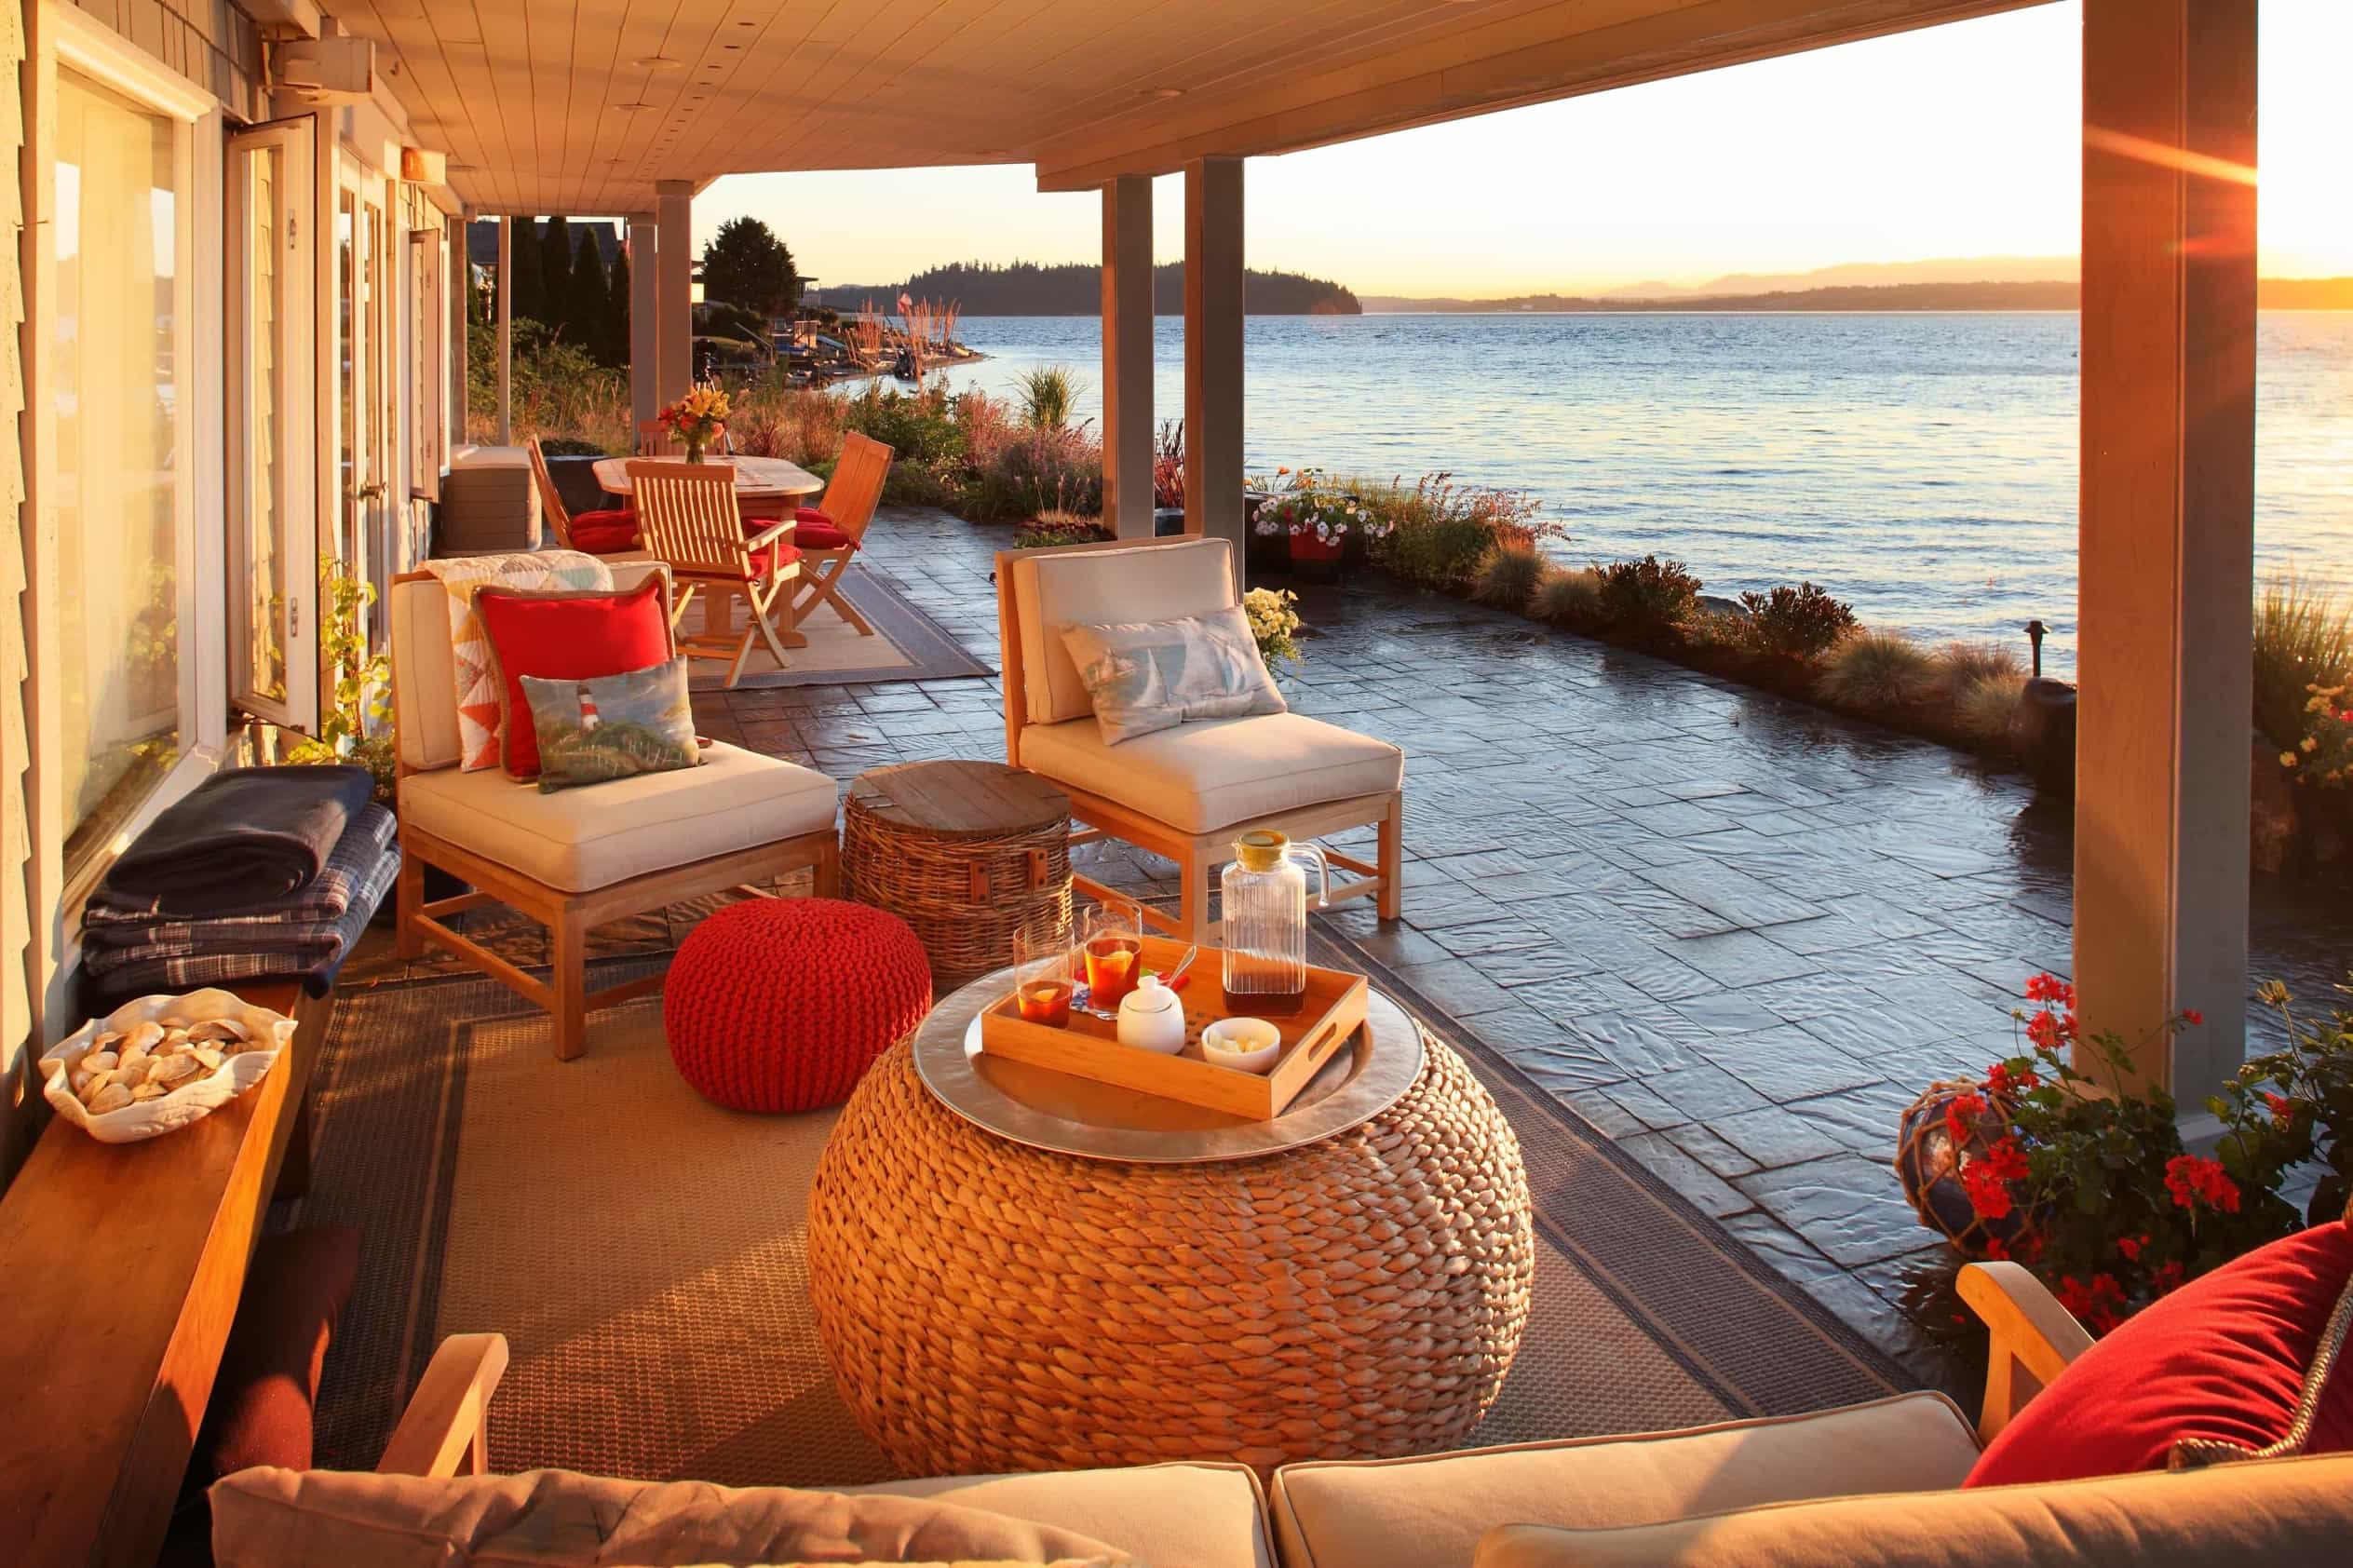 Featured Image of Covered Waterfront Patio With Stone Floor And Woven Ottoman